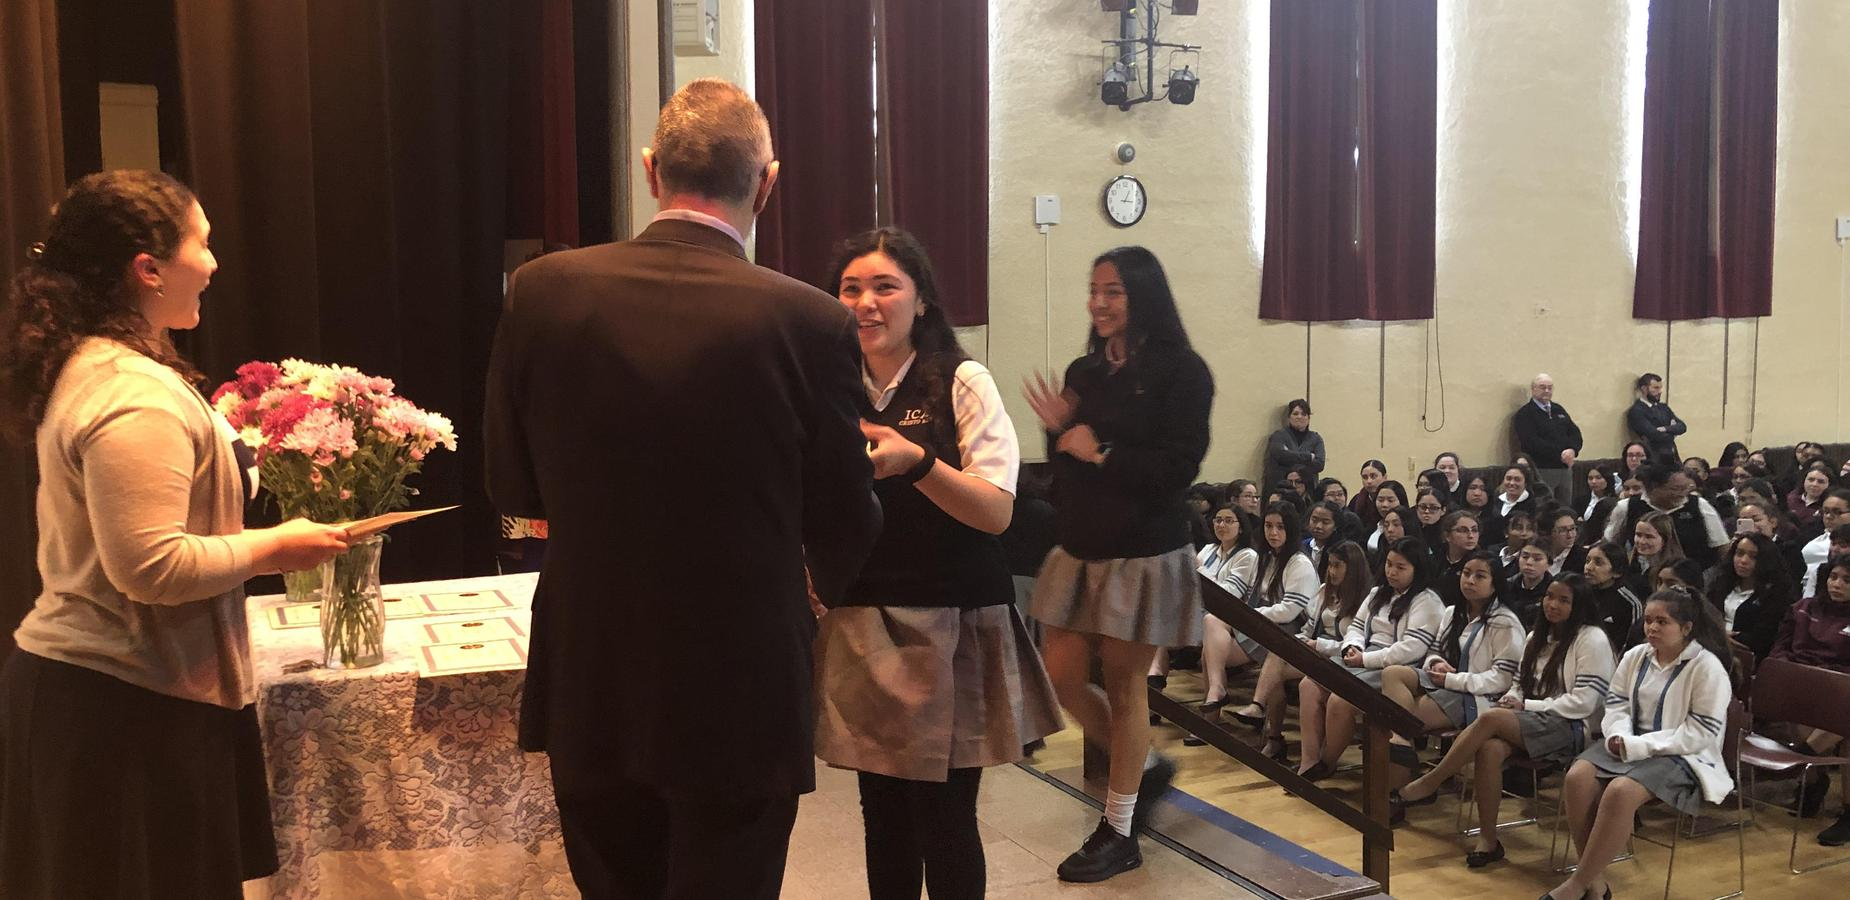 principal handing student honors award on stage at assembly